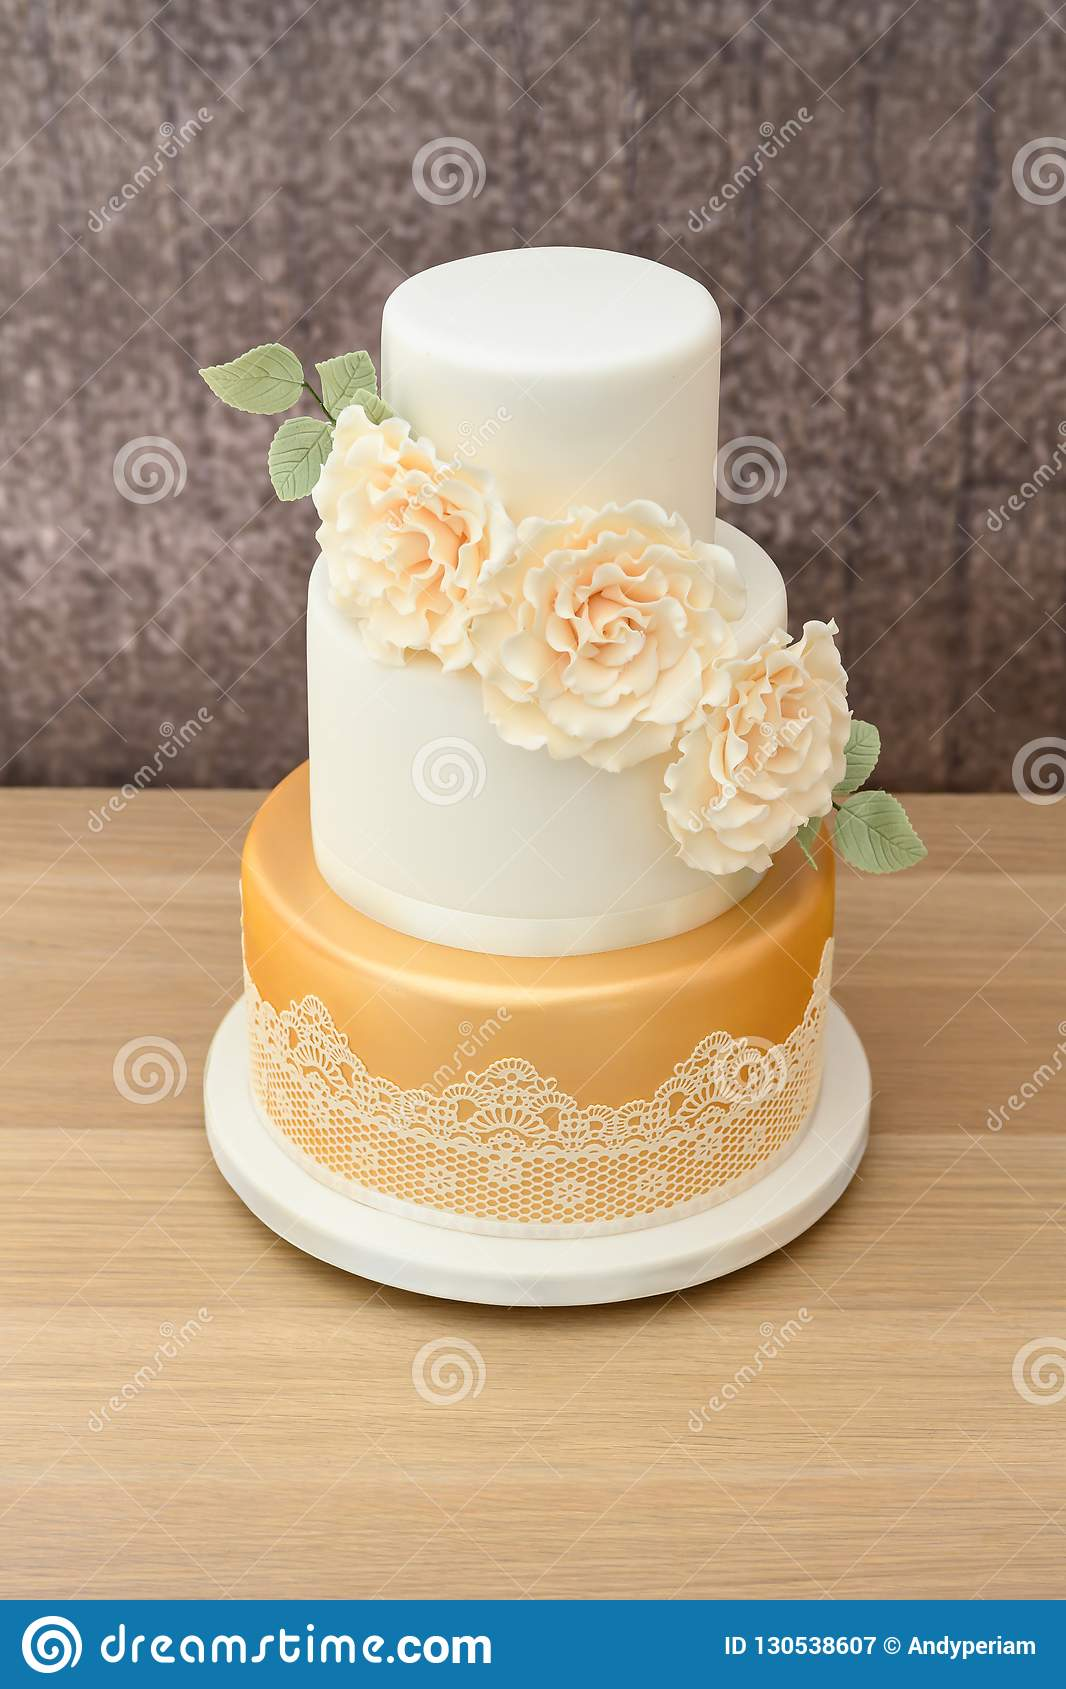 Three Tear Wedding Cakes.3 Tier Wedding Cake Stock Image Image Of Background 130538607